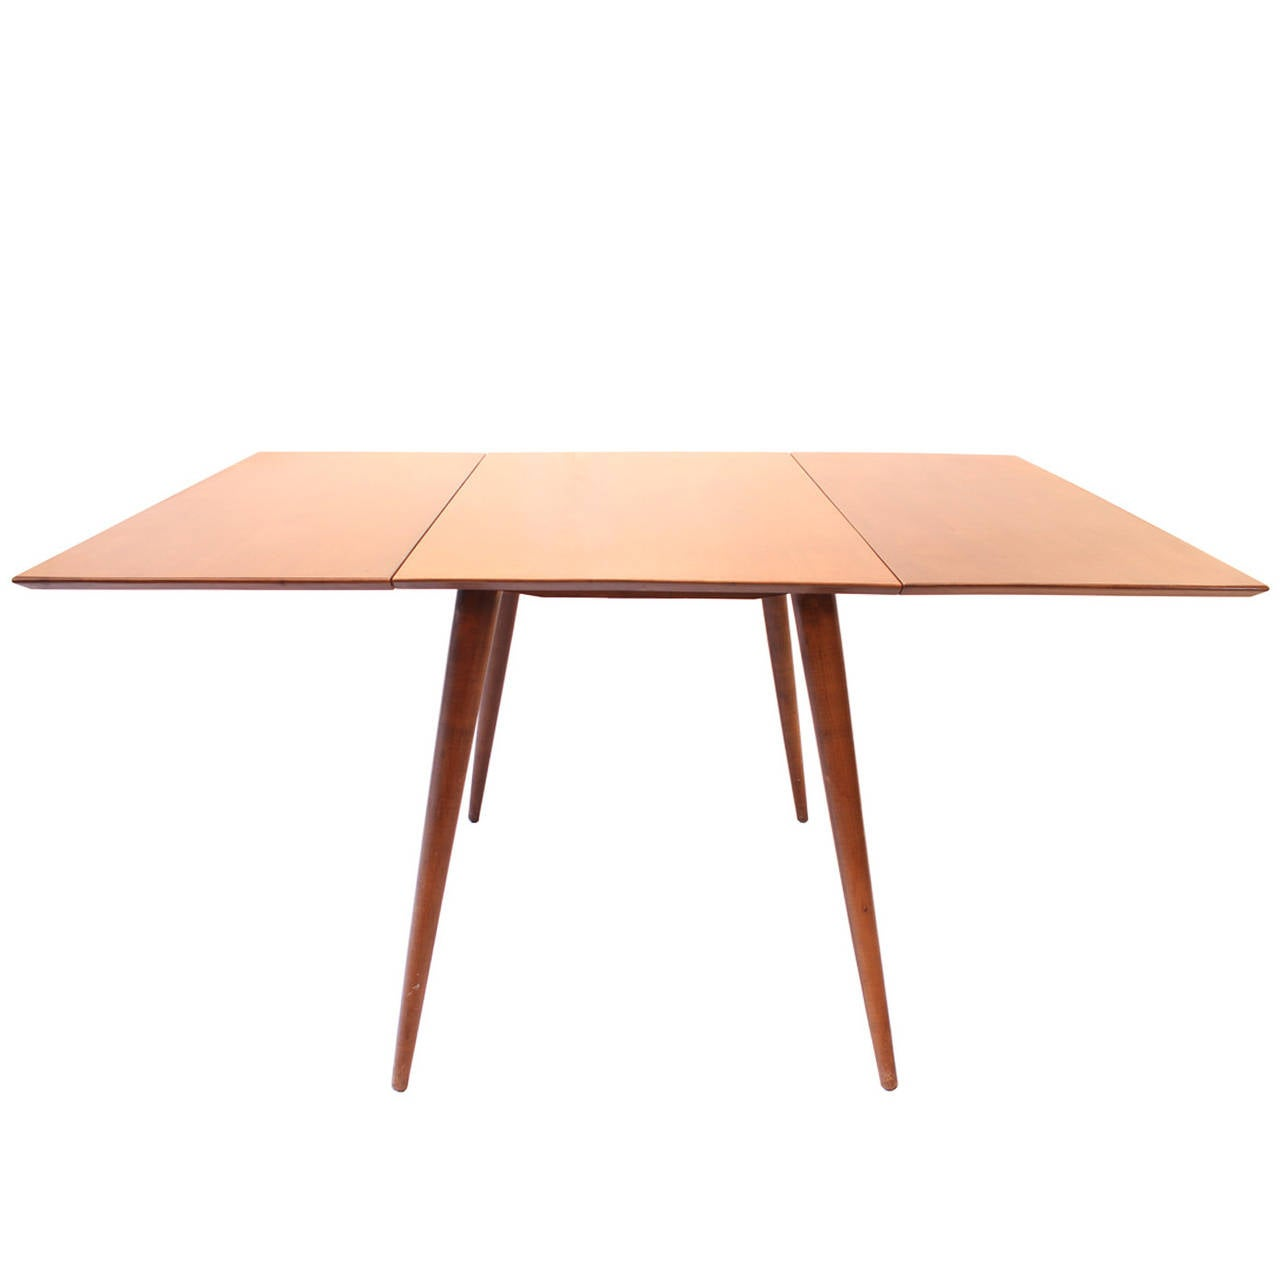 Paul McCobb Dining Table At 1stdibs